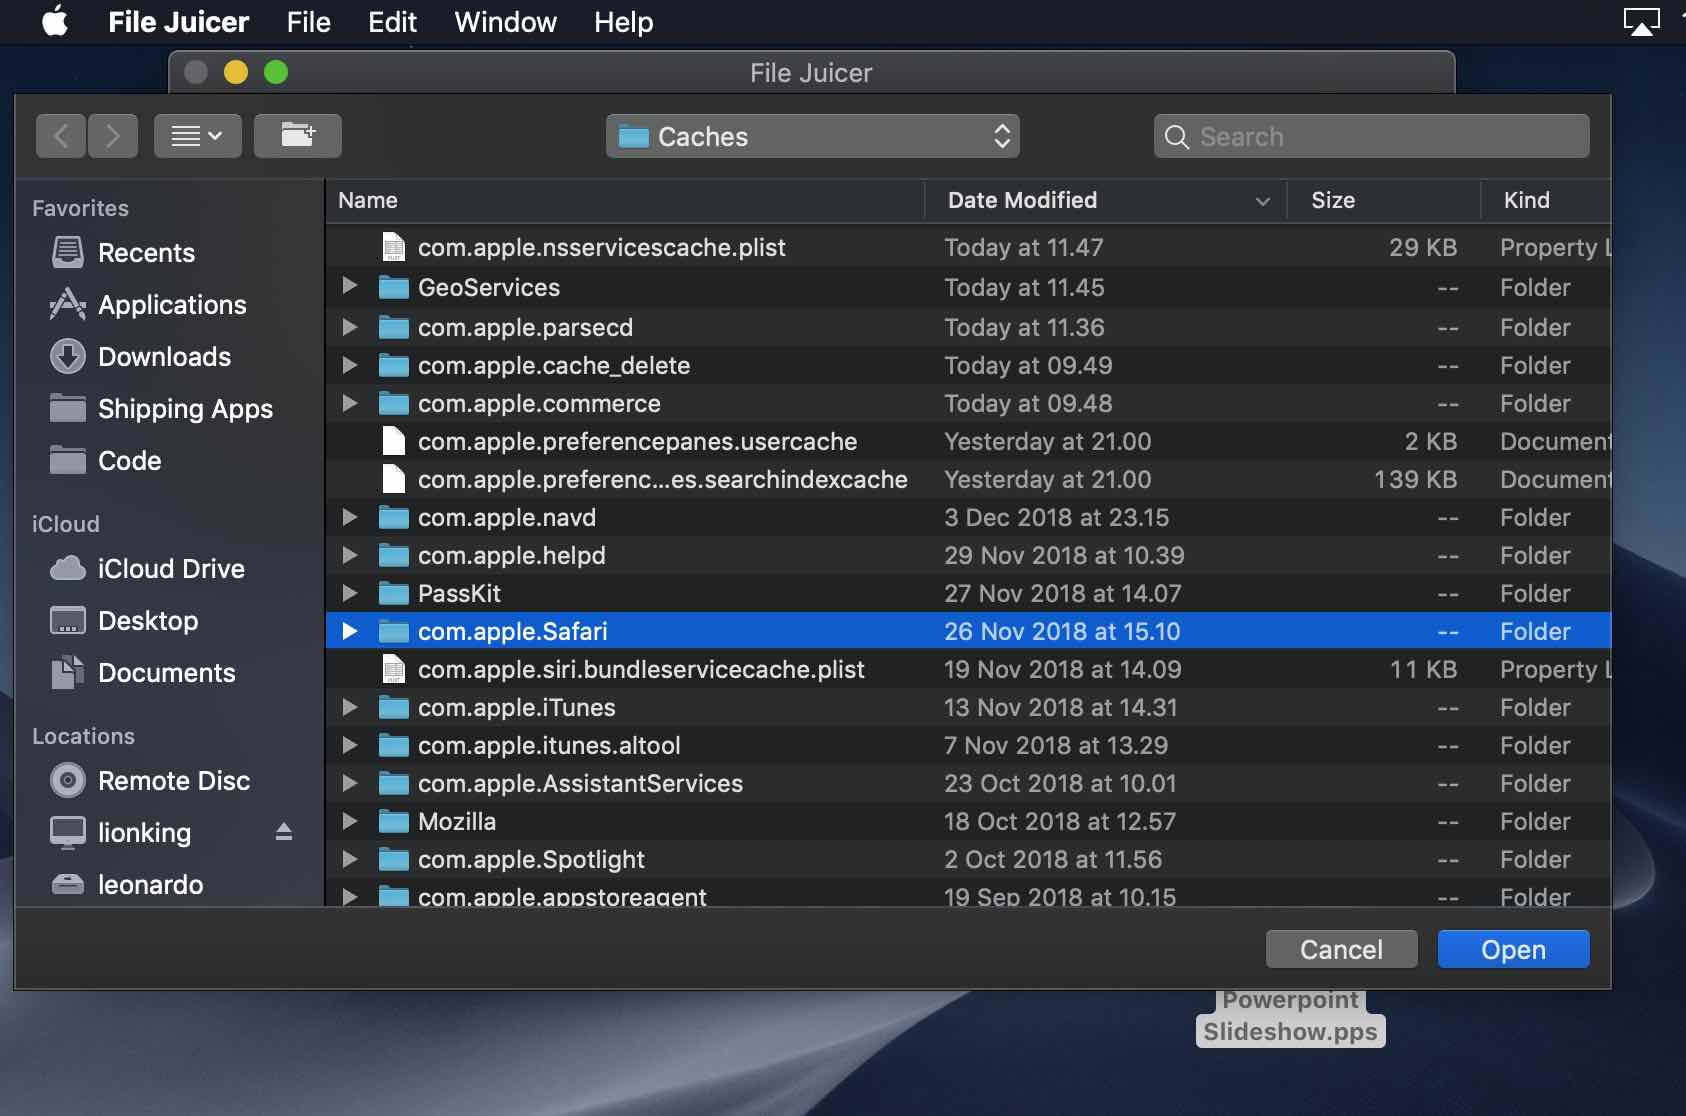 File Juicer - Extract or Recover Photos from Files, Folders and